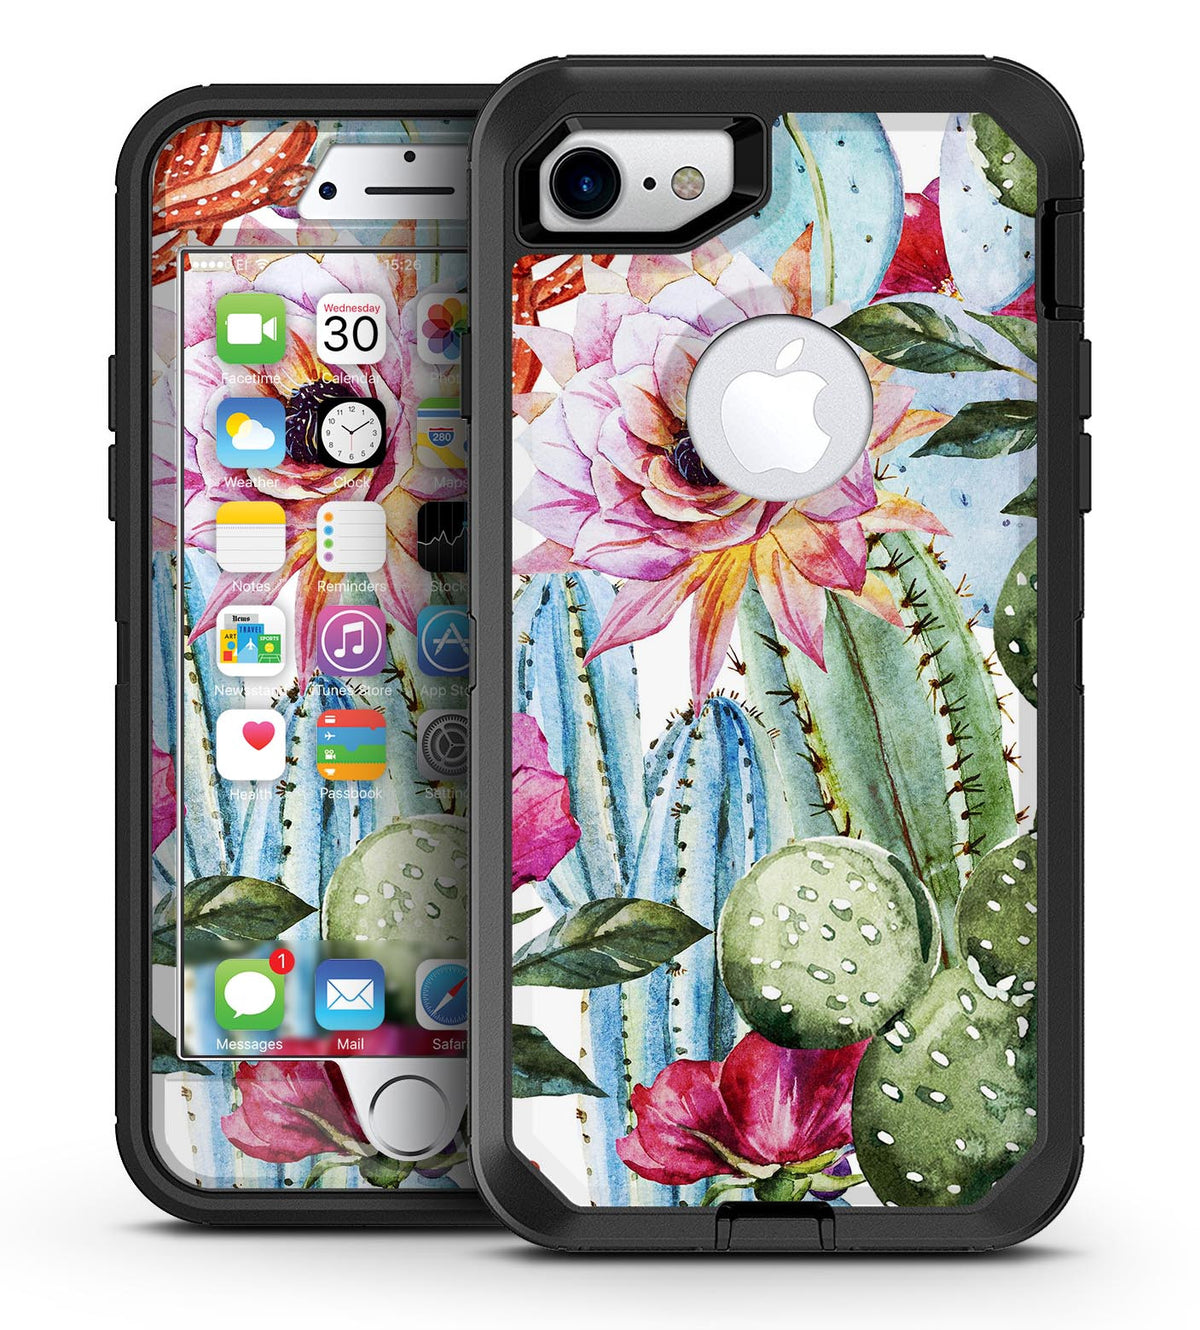 size 40 97b2f 45072 Vintage Watercolor Cactus Bloom - iPhone 7 or 7 Plus OtterBox Defender Case  Skin Decal Kit